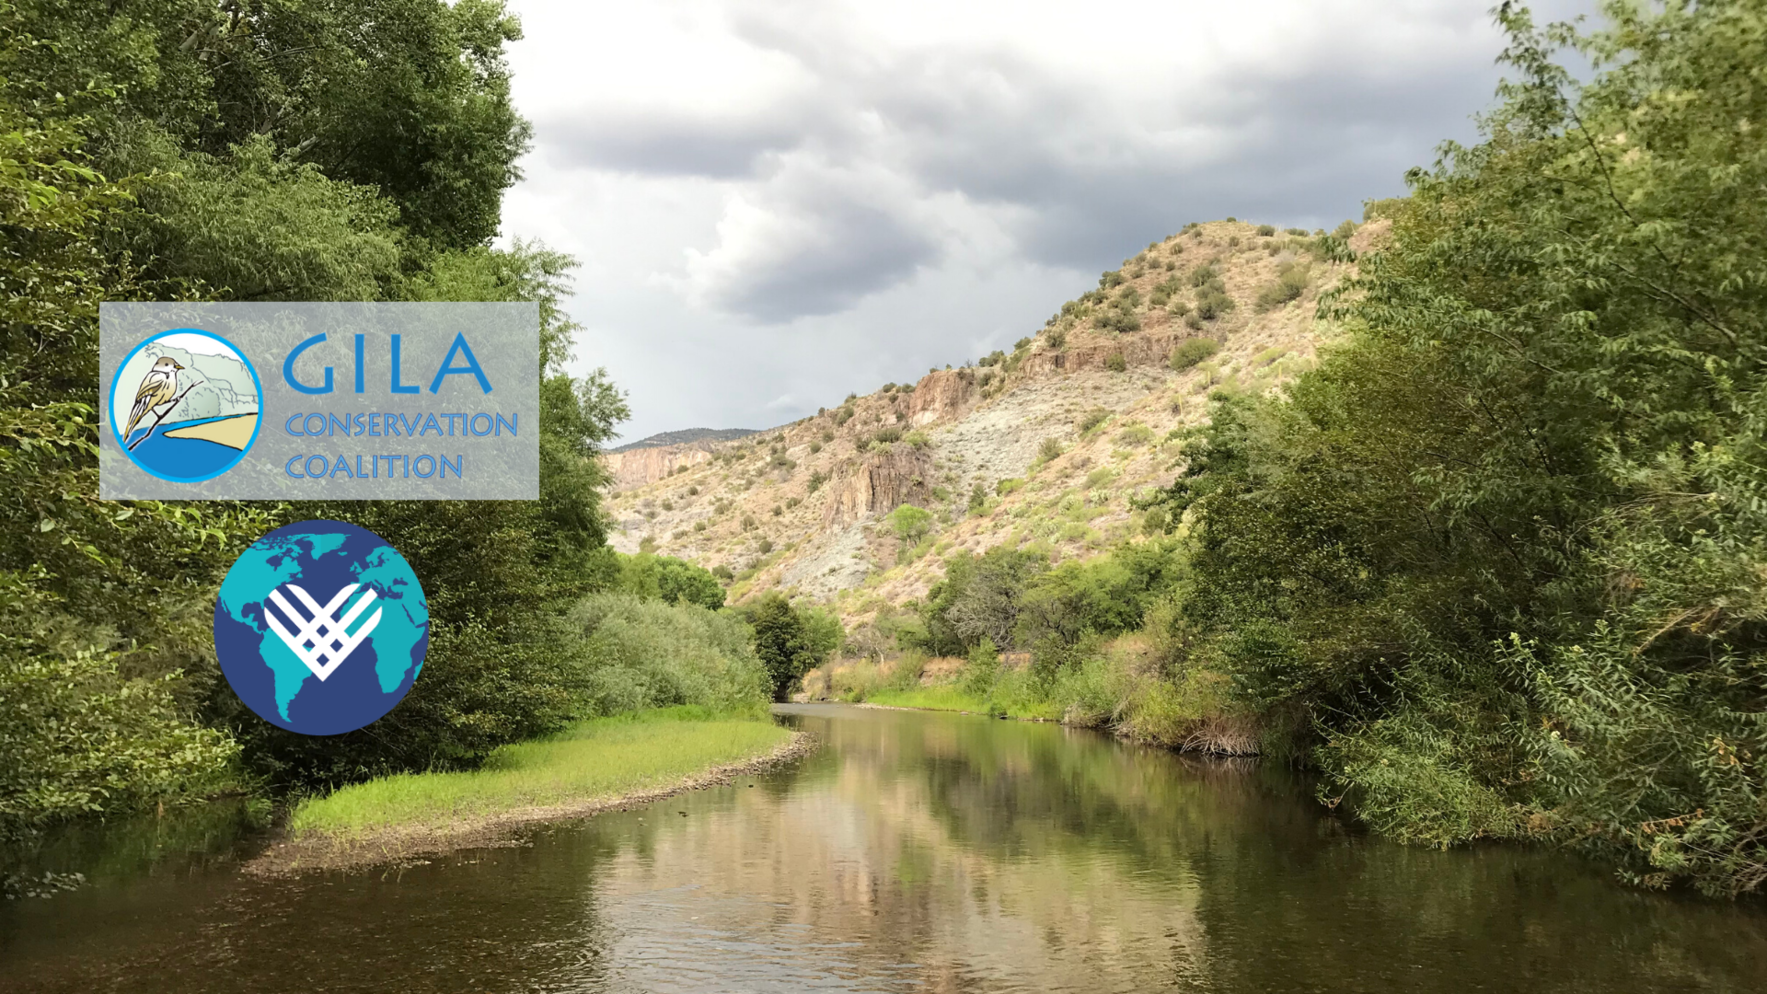 Together, we can protect the Gila River image